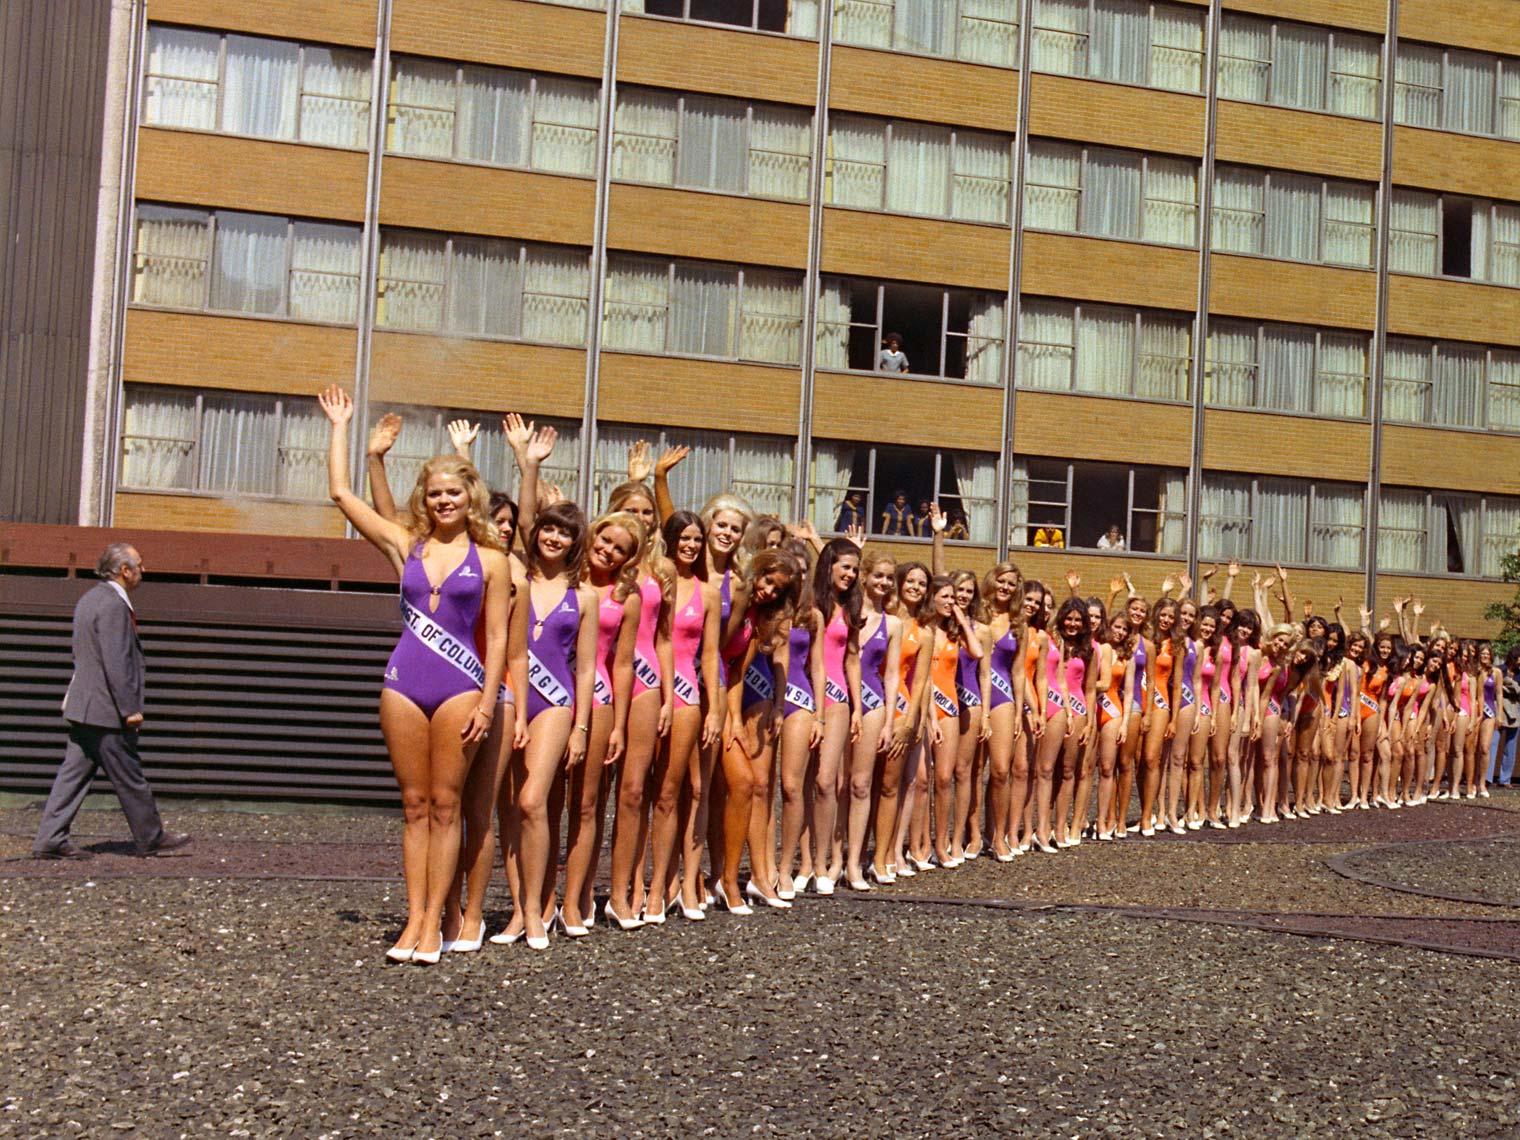 MISS USA CONTESTANTS; AMERICANA HOTEL, NEW YORK, NY